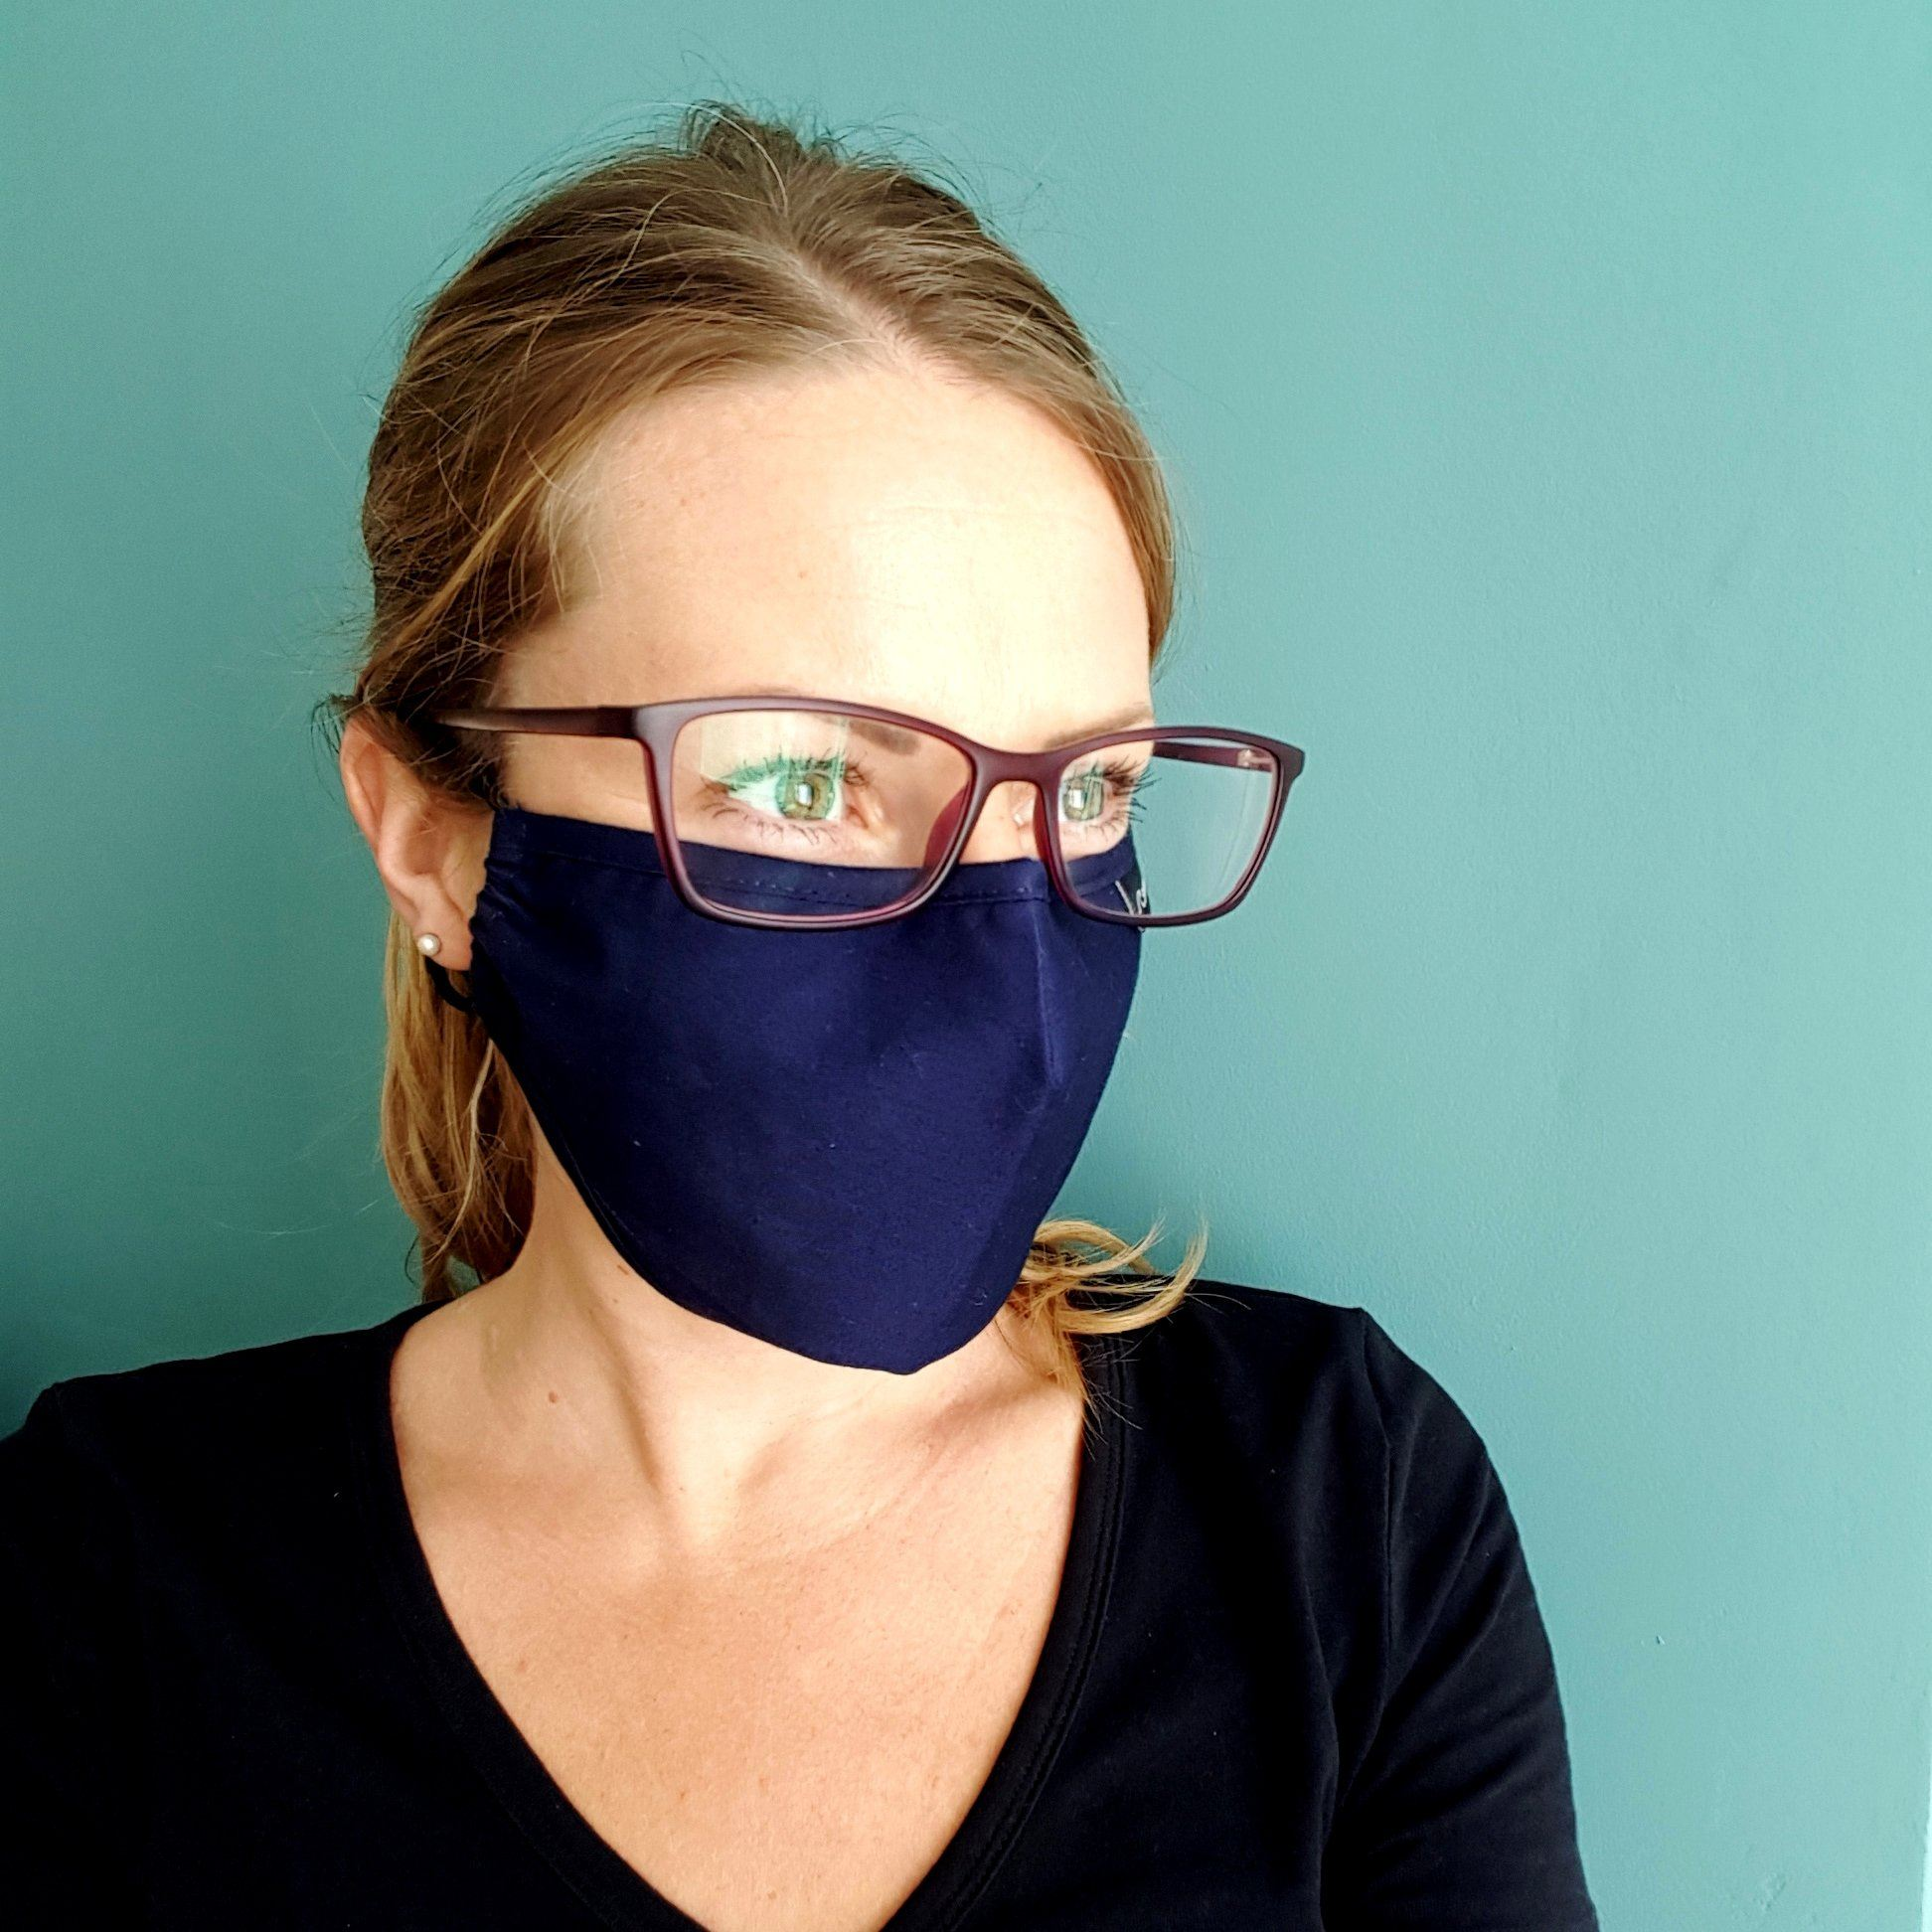 1 Simple Trick -How To Stop Glasses Fogging When Wearing a Face Mask